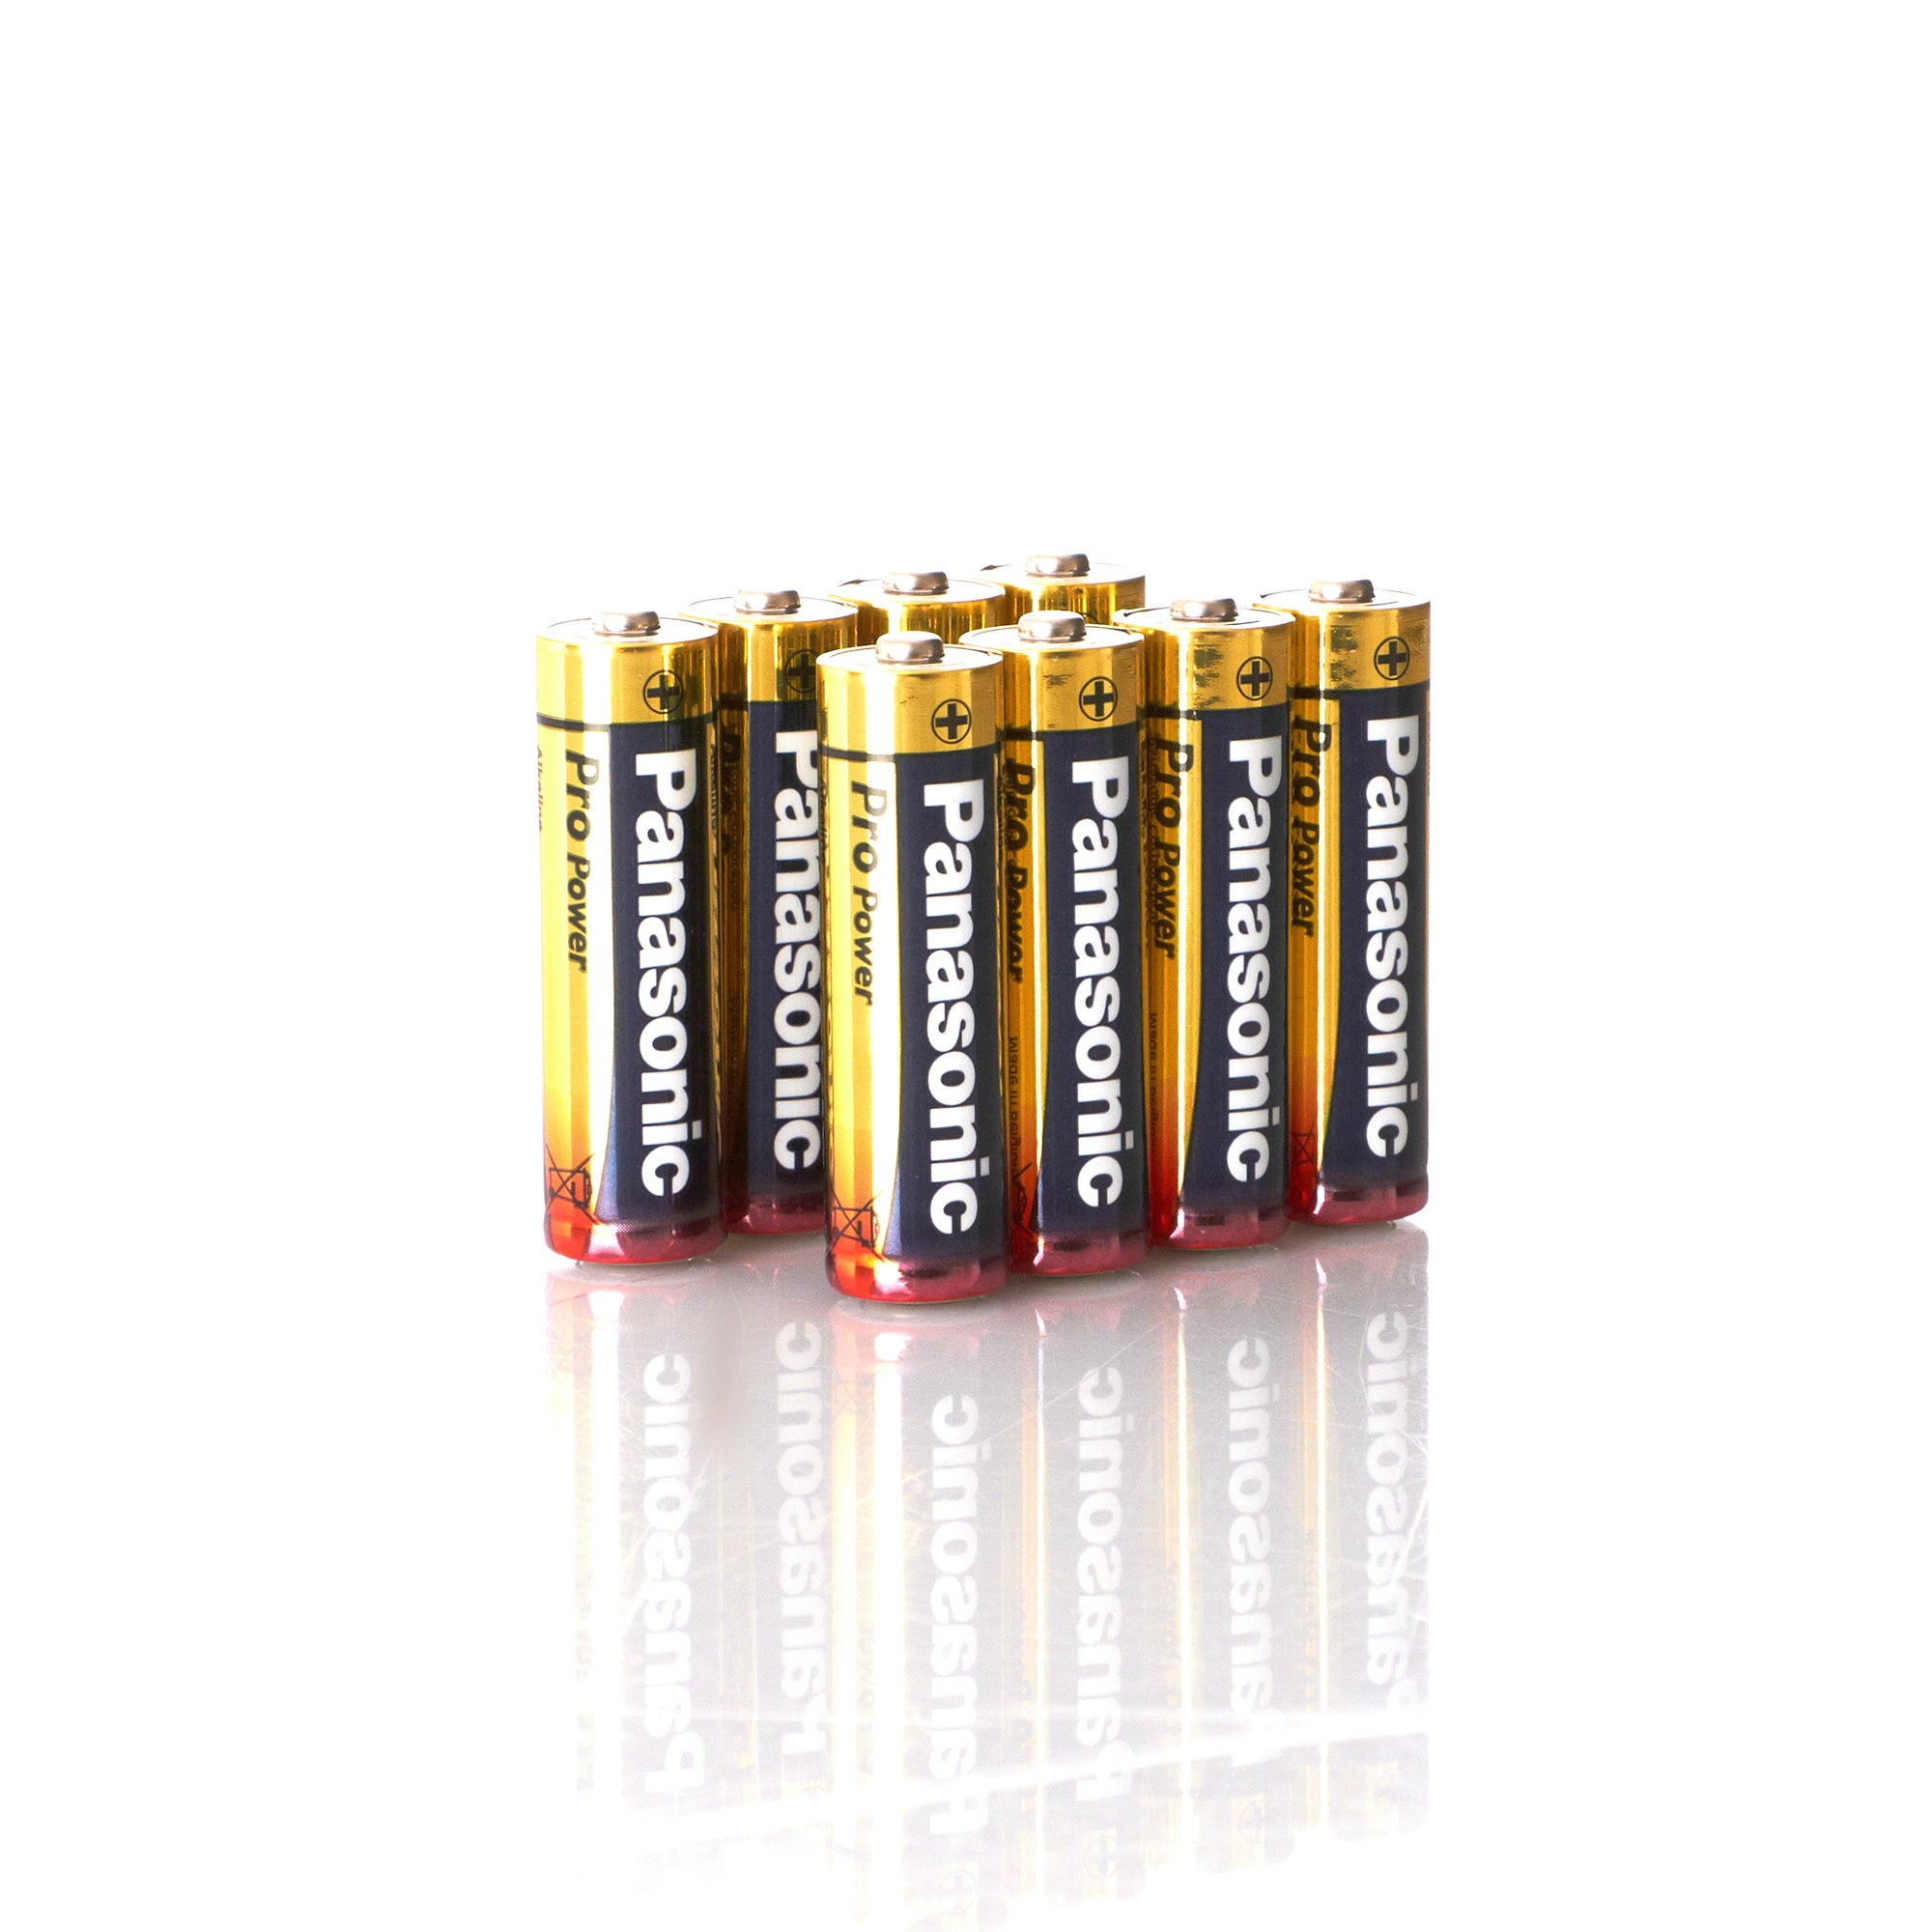 Panasonic 16 Pro Power AA Batteries